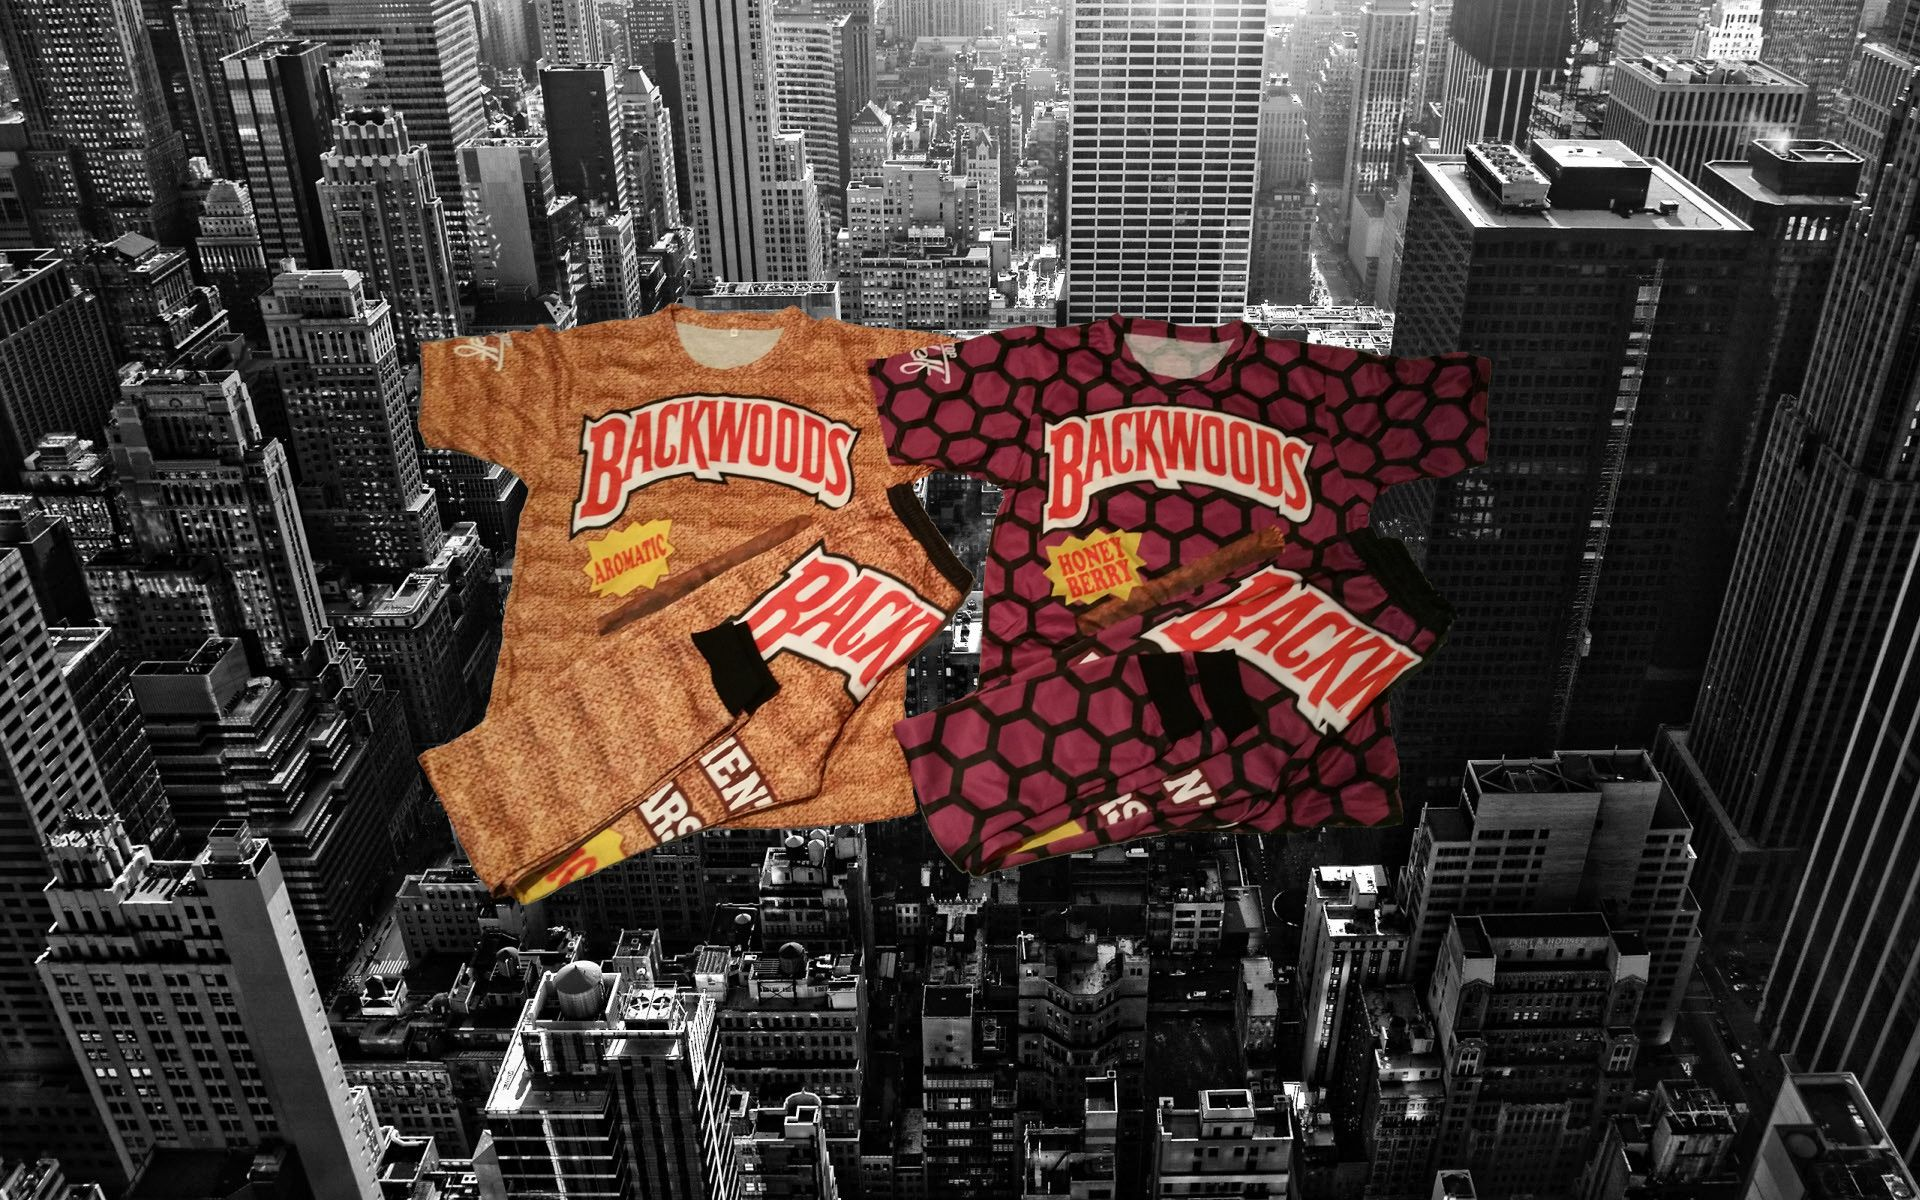 Get your Backwoods gear today Add us on